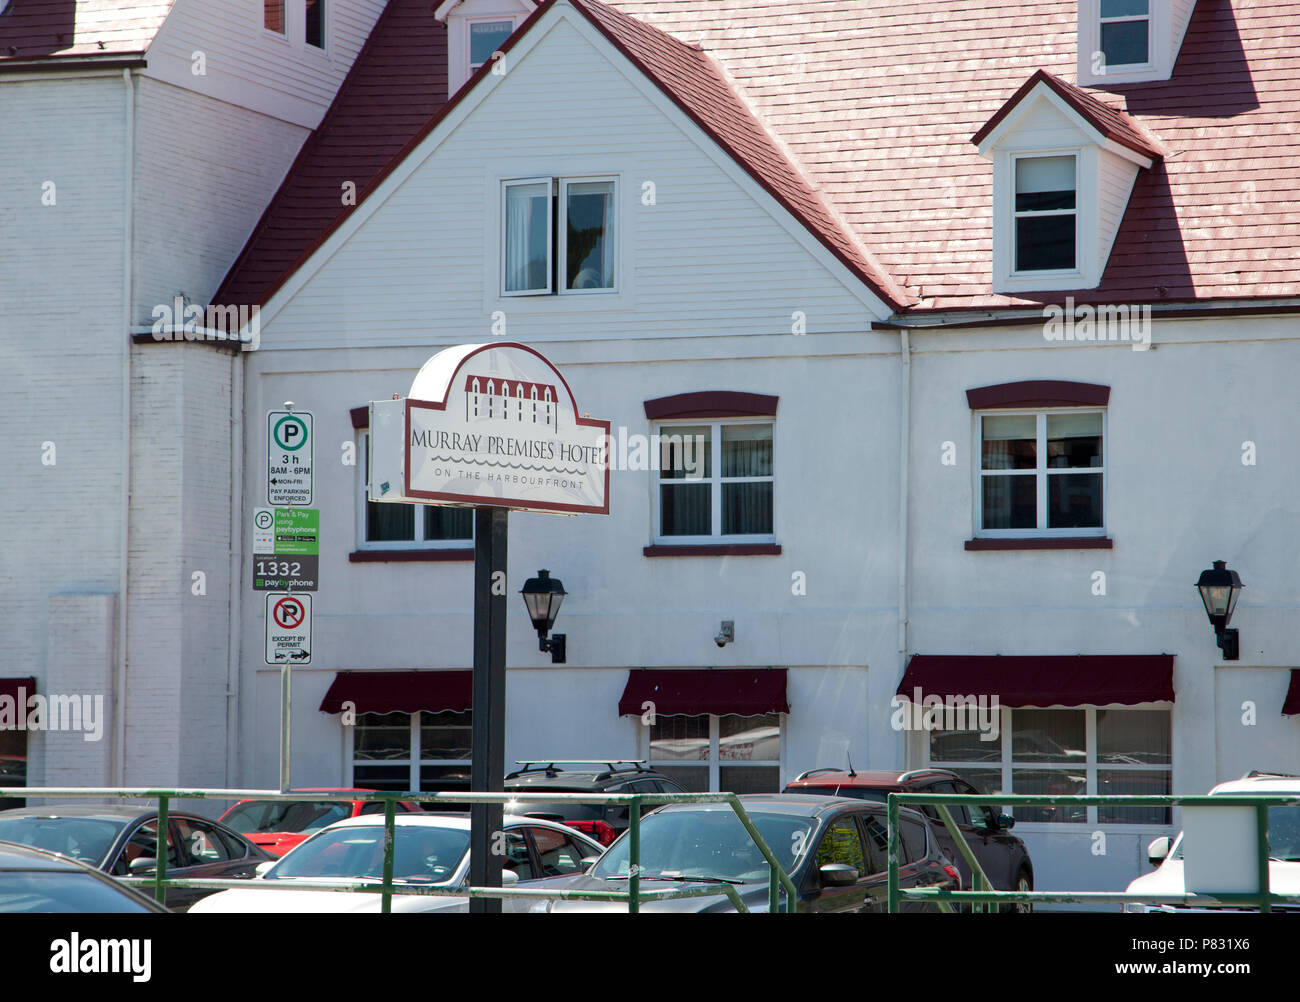 June 23, 2018 - St. Johns, Newfoundland: The beautiful Murray Premises hotel on Beck's Cove - Stock Image